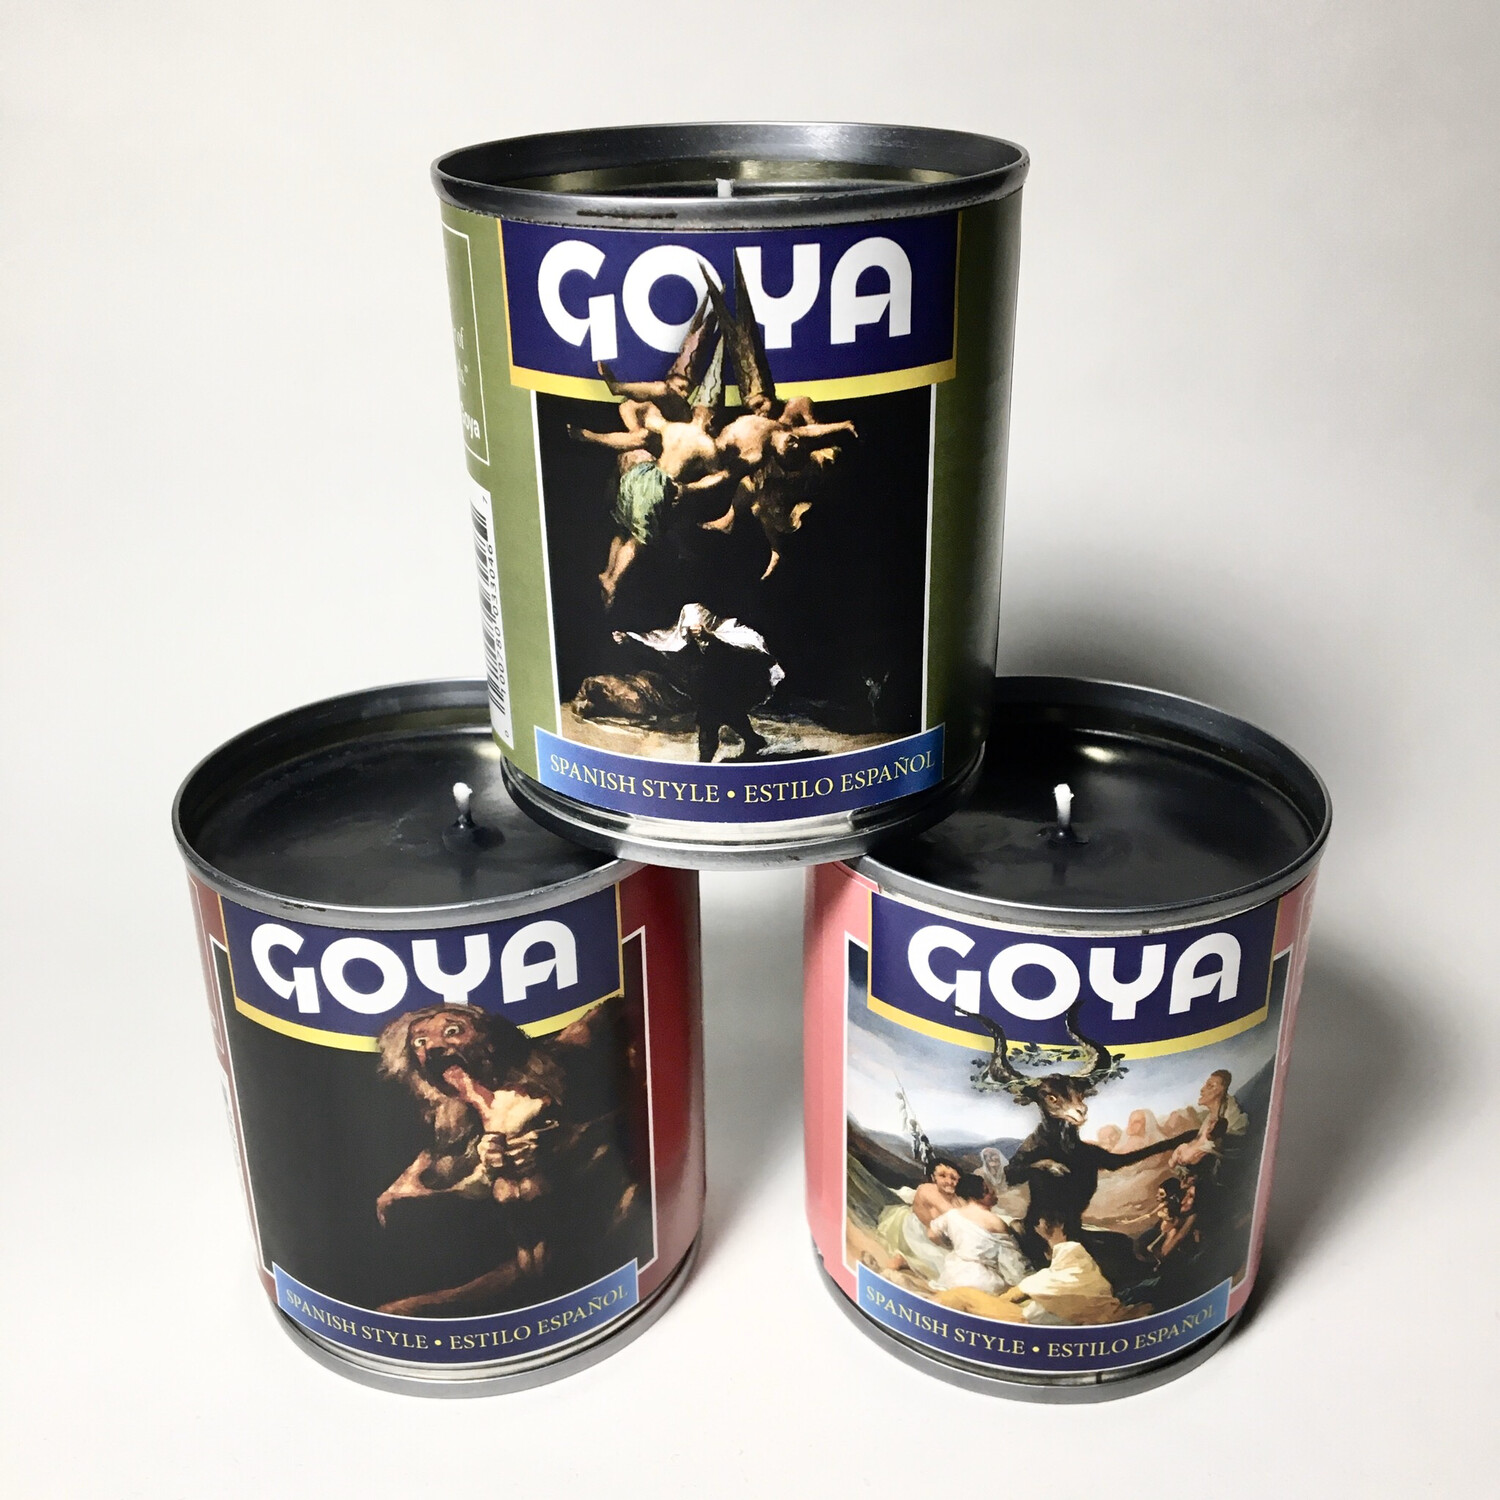 3-piece Goya Candle Set